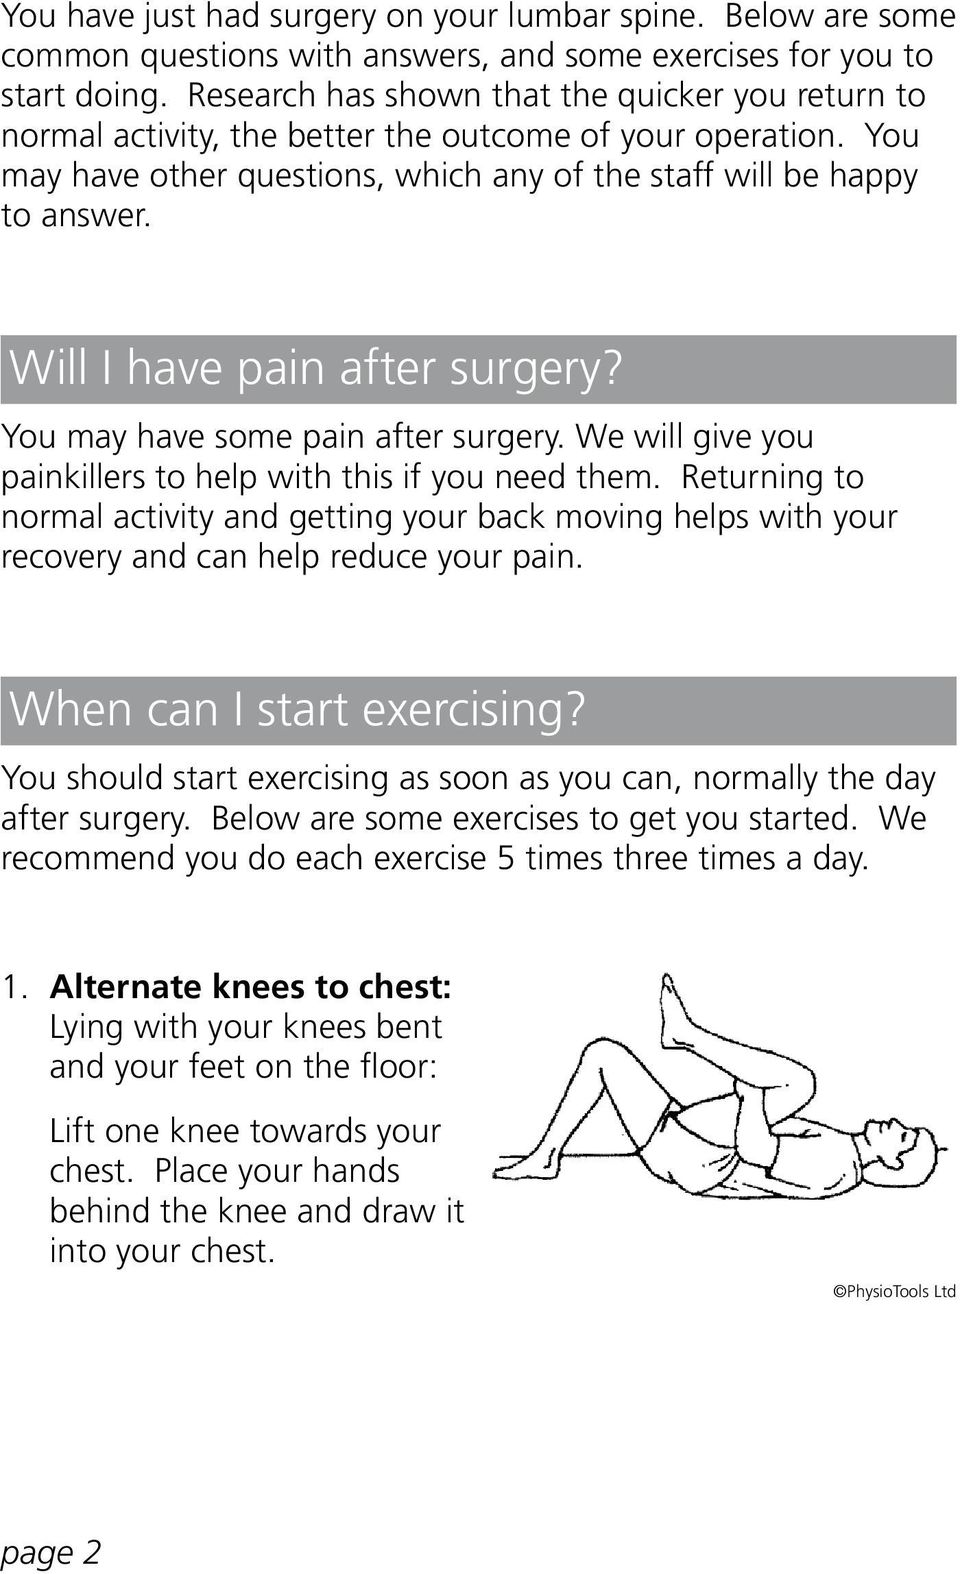 Will I have pain after surgery? You may have some pain after surgery. We will give you painkillers to help with this if you need them.